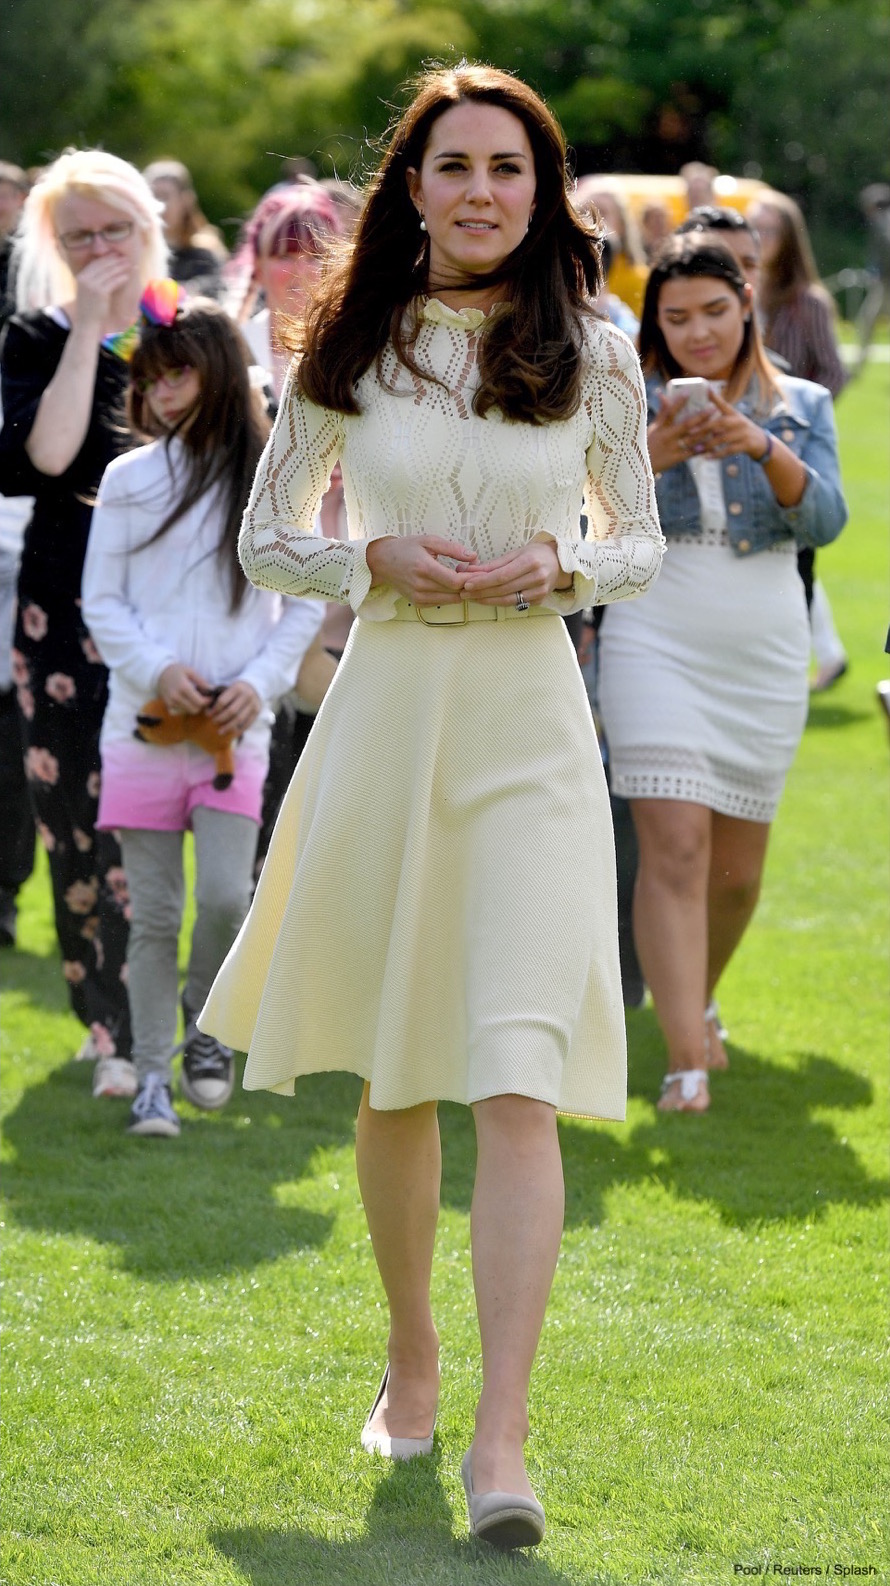 Britain's Catherine, Duchess of Cambridge attends a tea party at Buckingham Palace in London, Britain on May 13, 2017. The Party at The Palace honoured the children of those who have died serving in the Armed Forces. Pictured: Catherine, Duchess of Cambridge Ref: SPL1498160 130517 Picture by: Pool / Reuters / Splash Splash News and Pictures Los Angeles: 310-821-2666 New York: 212-619-2666 London: 870-934-2666 photodesk@splashnews.com